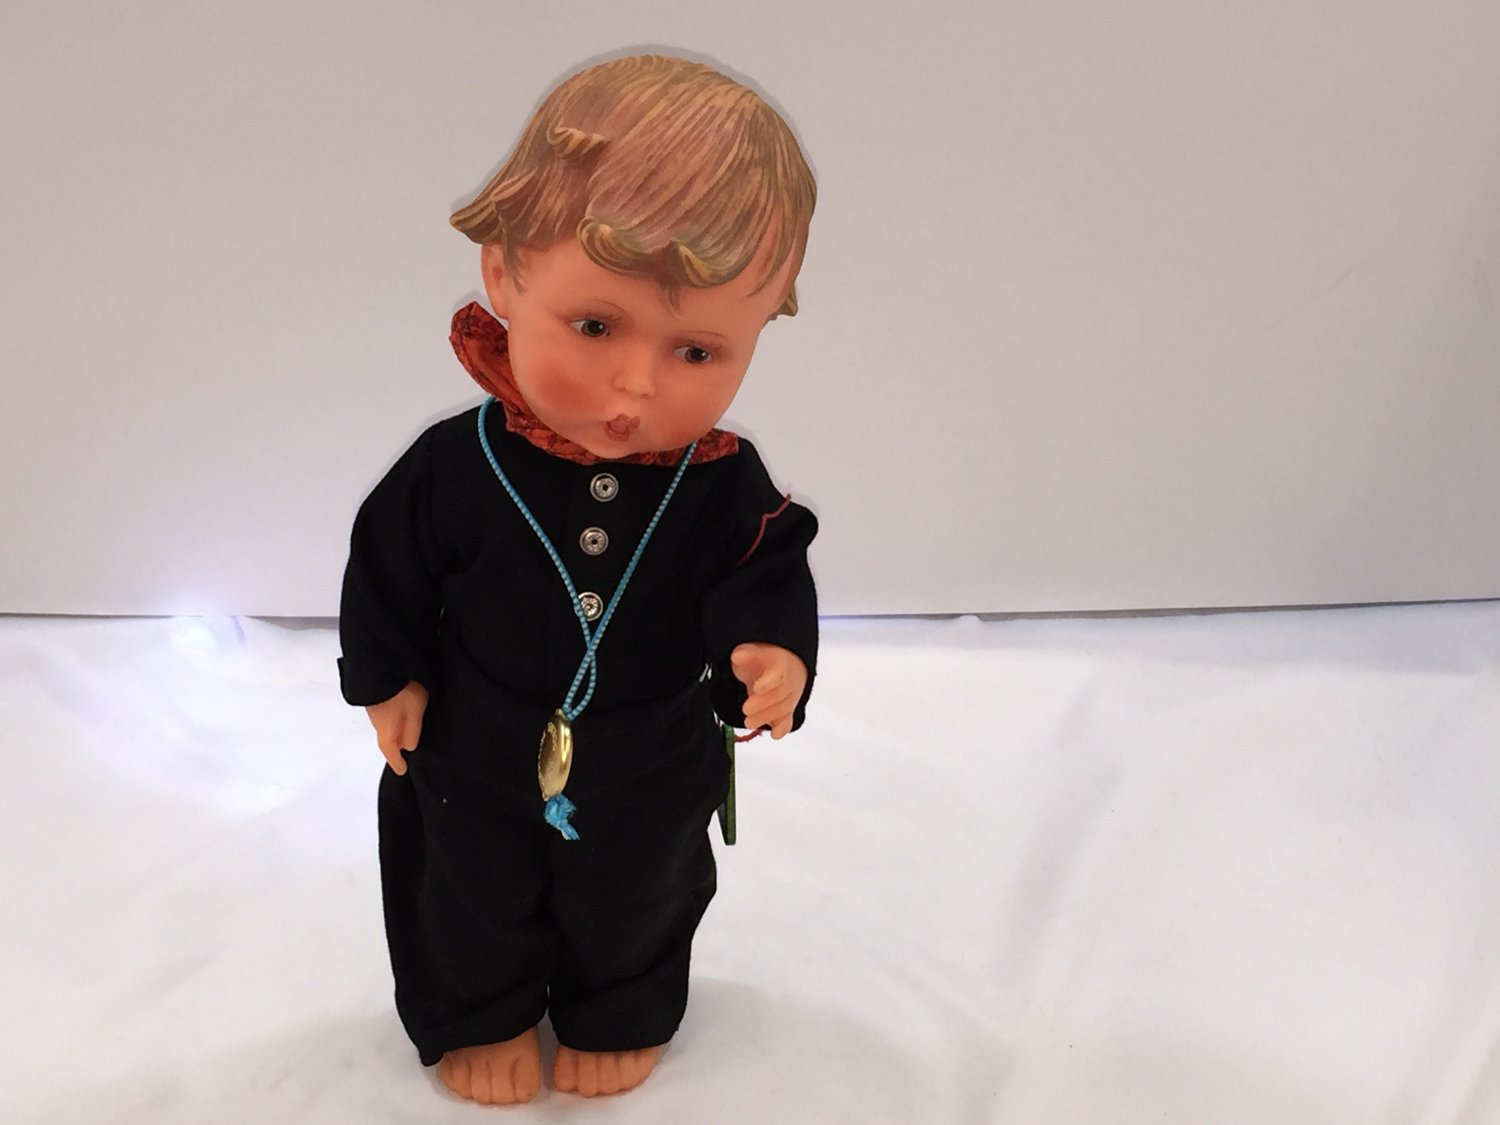 """Hummel Goebel Boy Doll with 2 outfits and original tags 12"""" tall"""